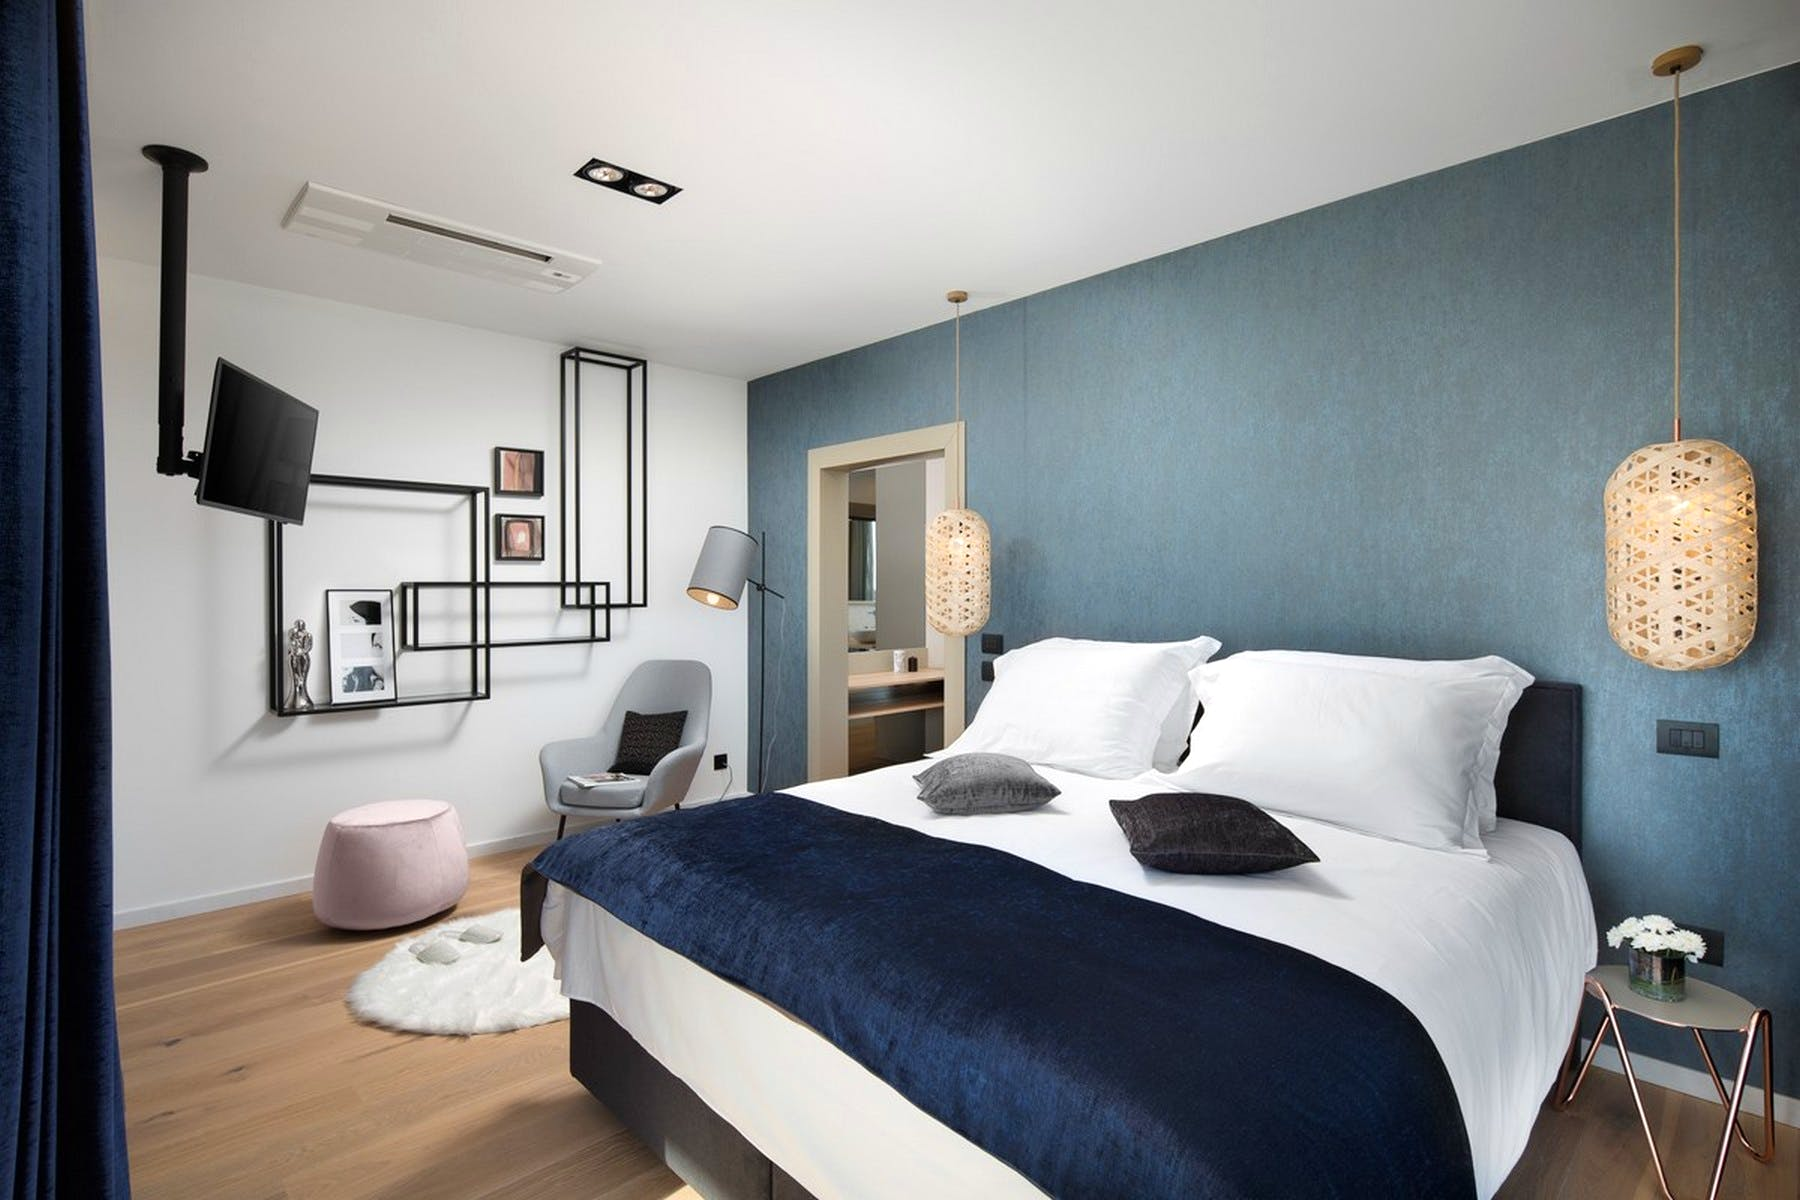 Double bedroom with interesting details